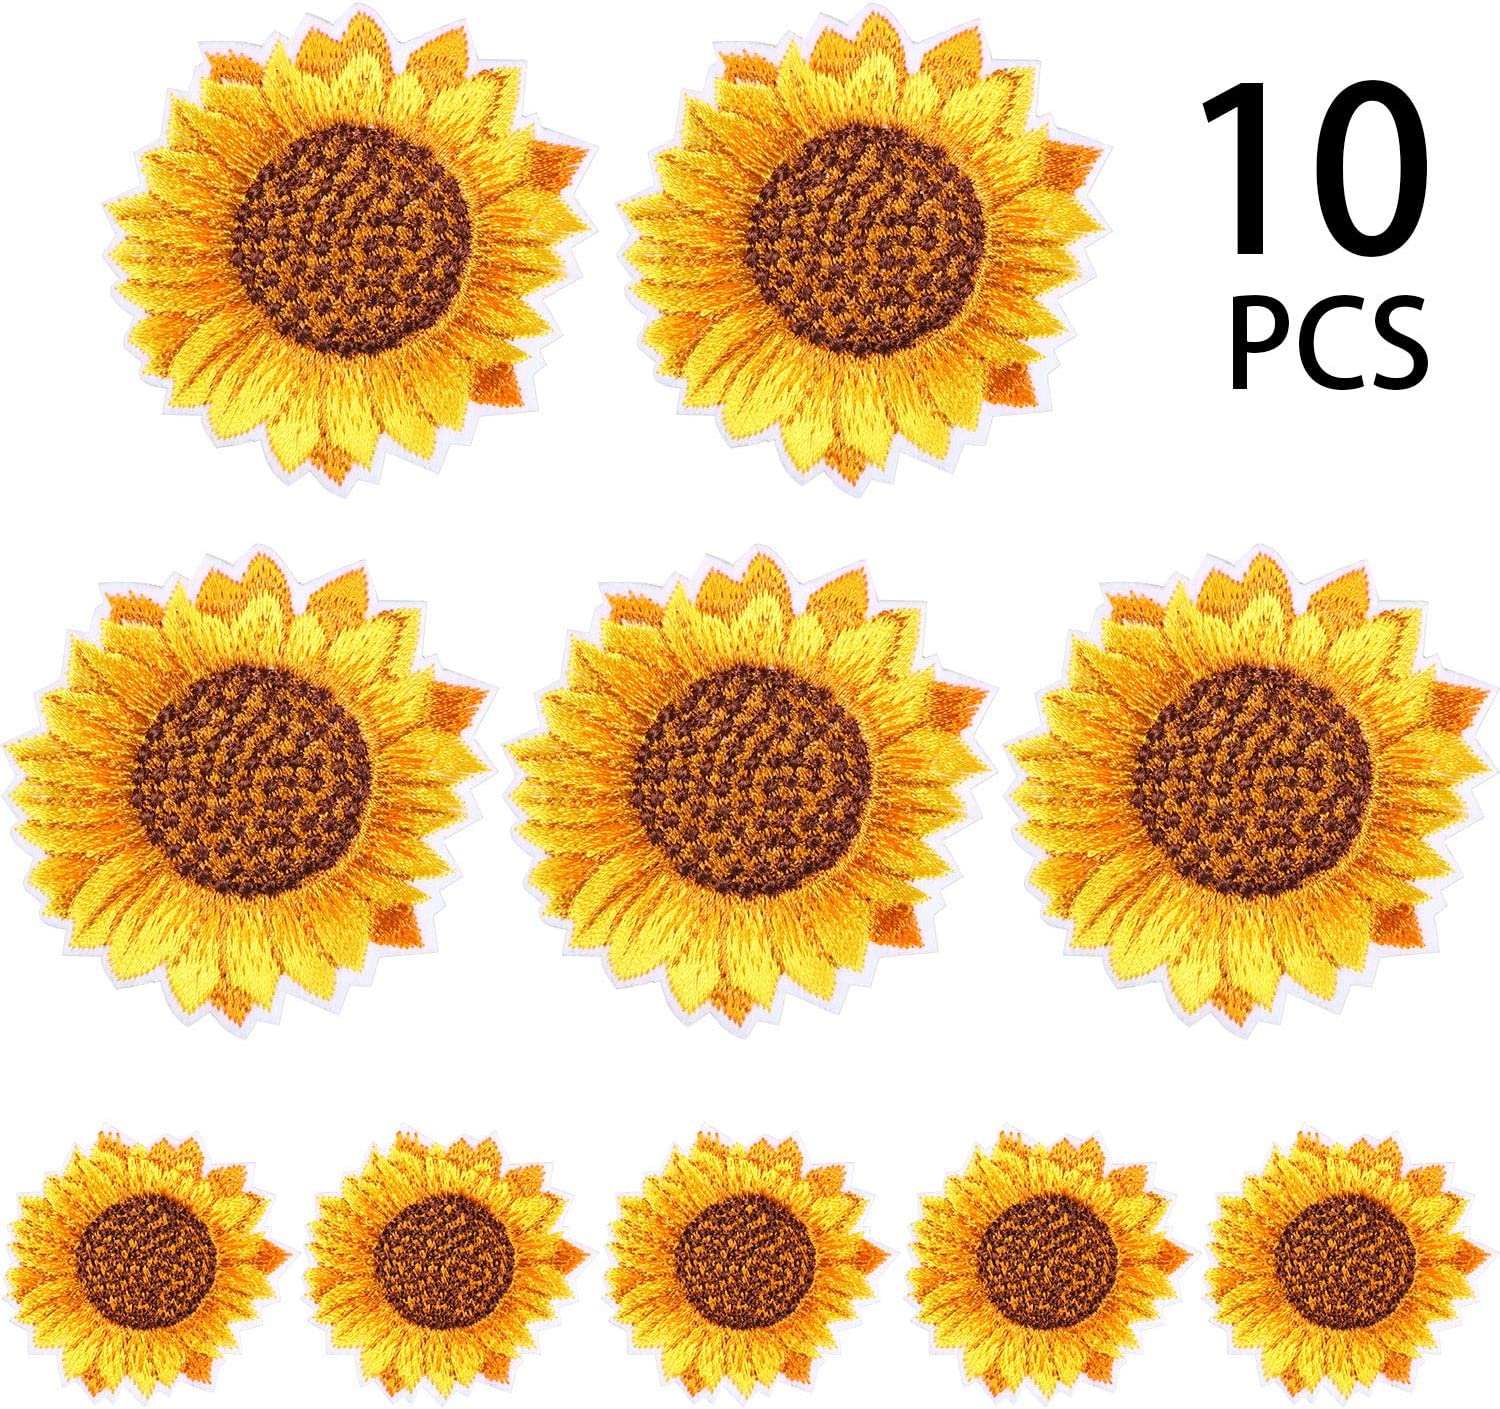 10 Pieces Sunflower Embroidery Patches Iron und Sew auf Applique Badge für Clothes Jeans Jacket Hut Dress Diy Accessories